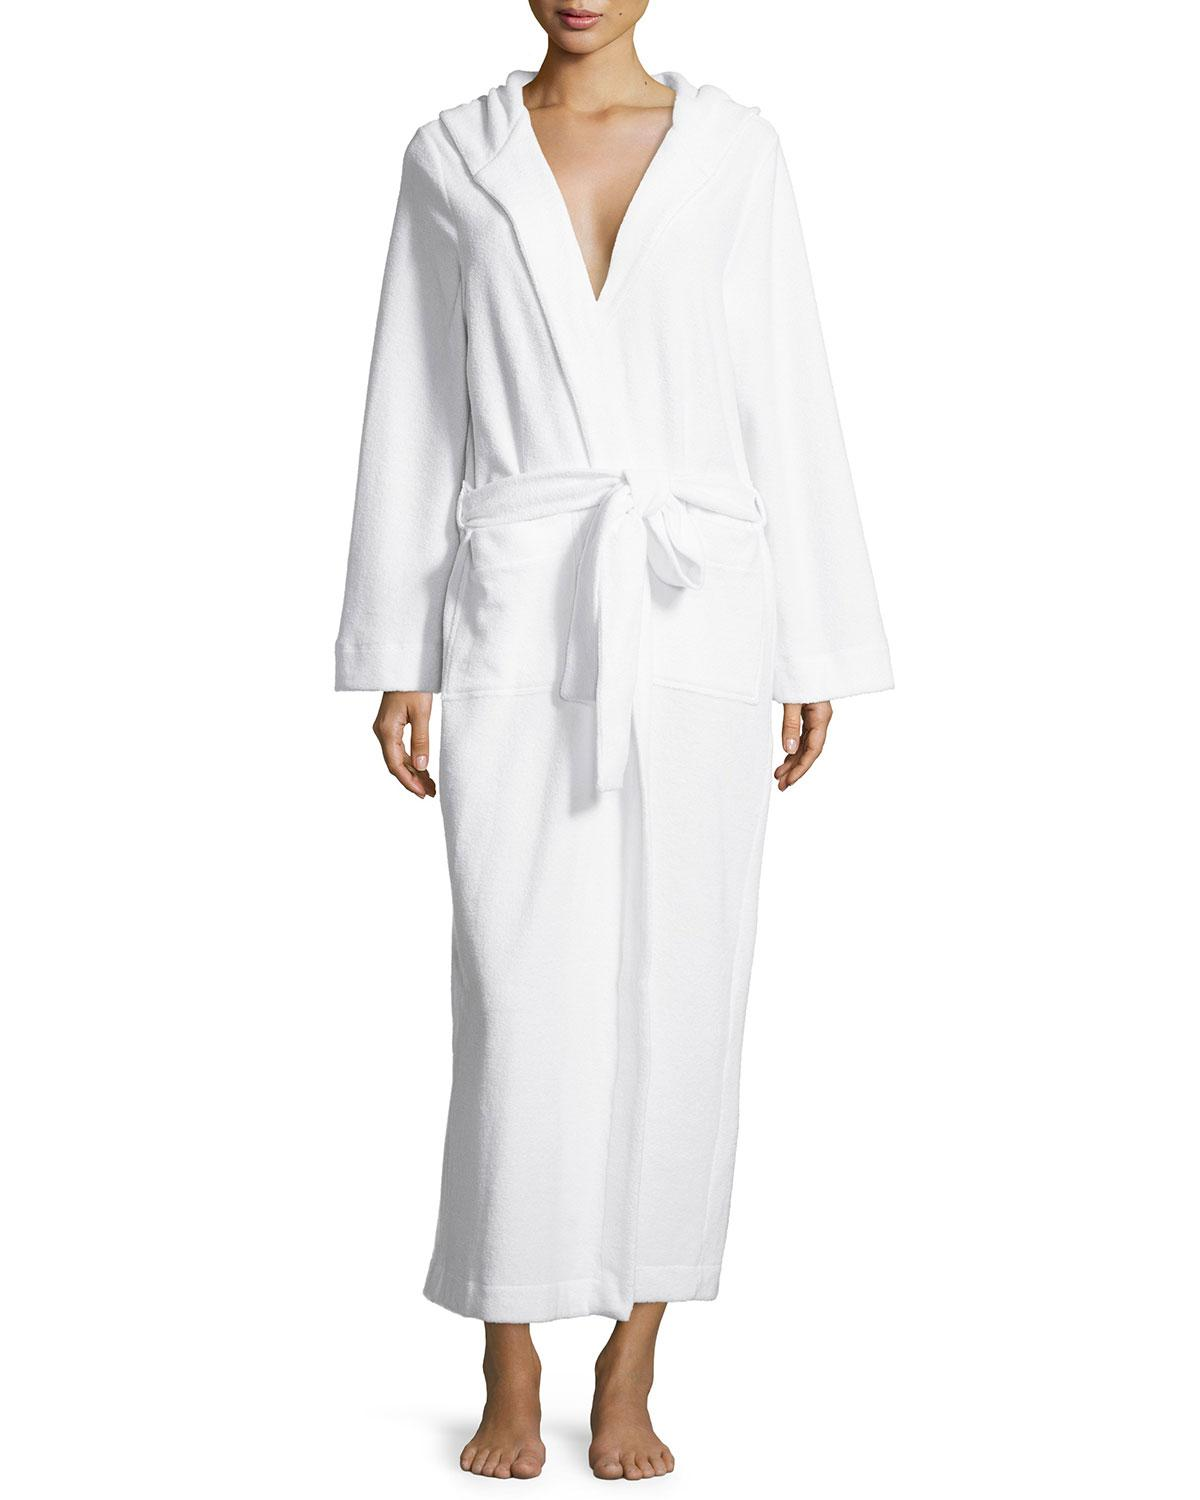 0879ae5a22 Lyst - Hanro Long Hooded Plush Robe in White